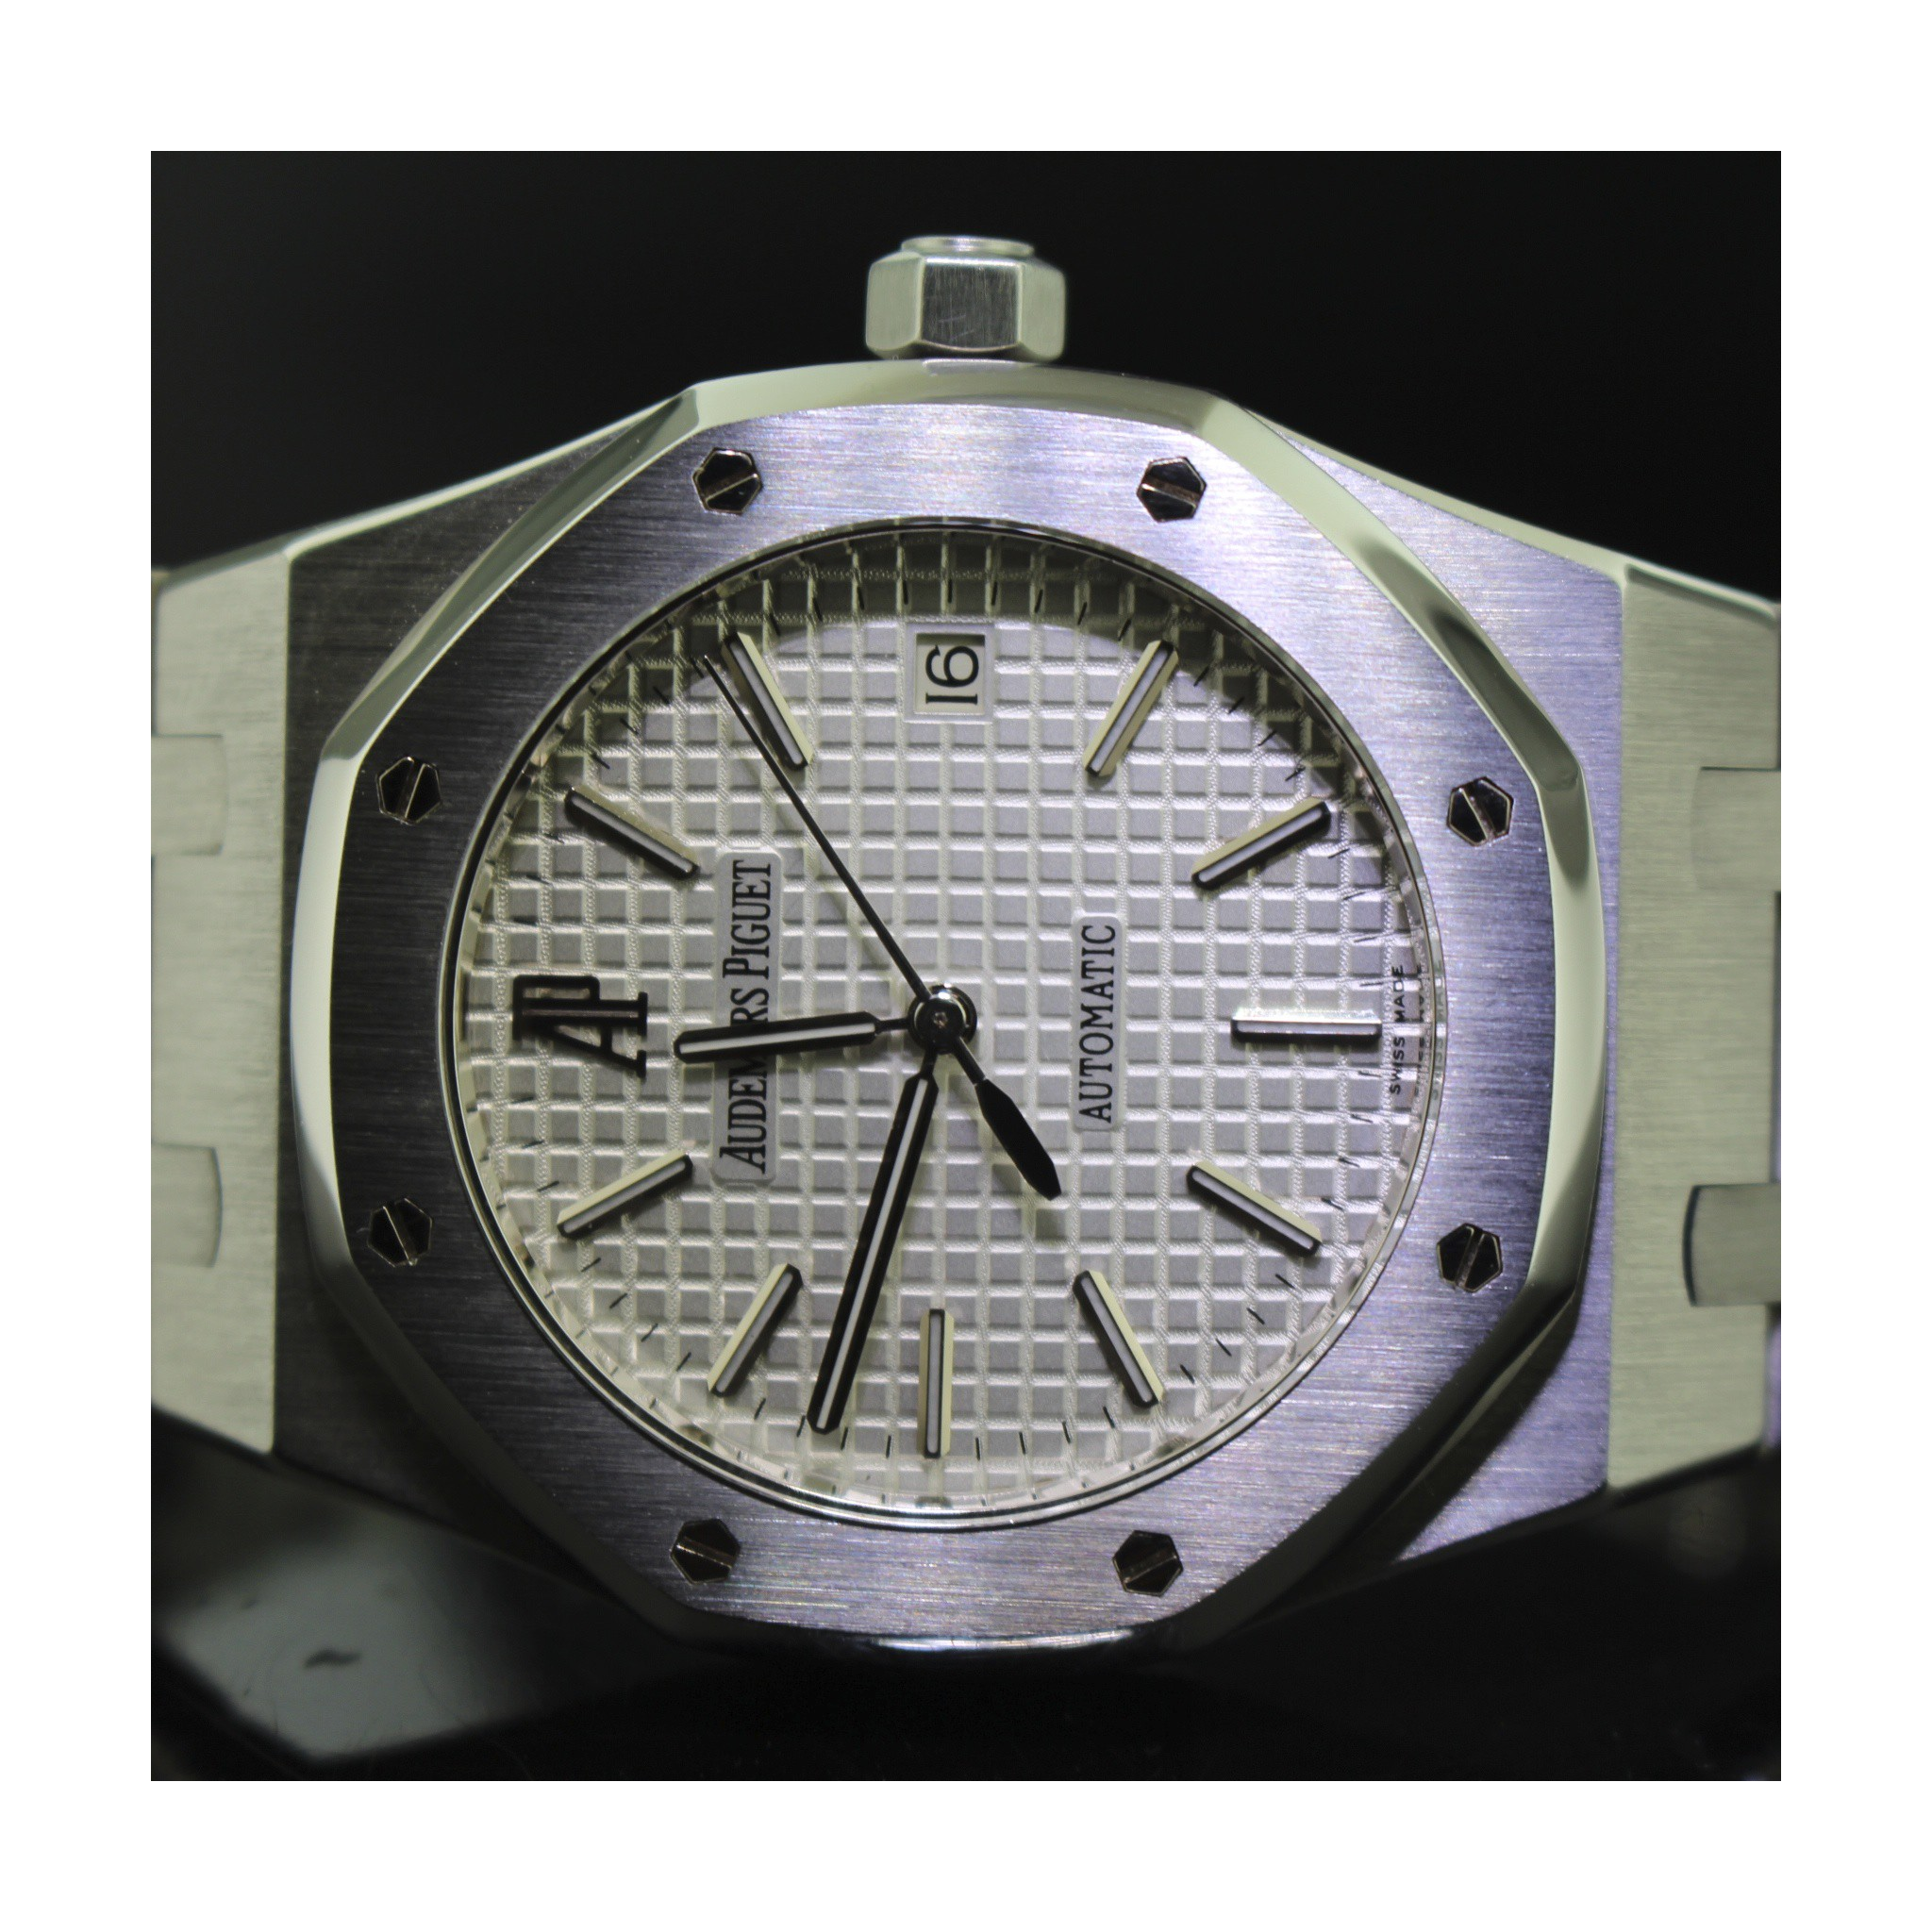 Audemars Piguet Royal Oak | Riccione